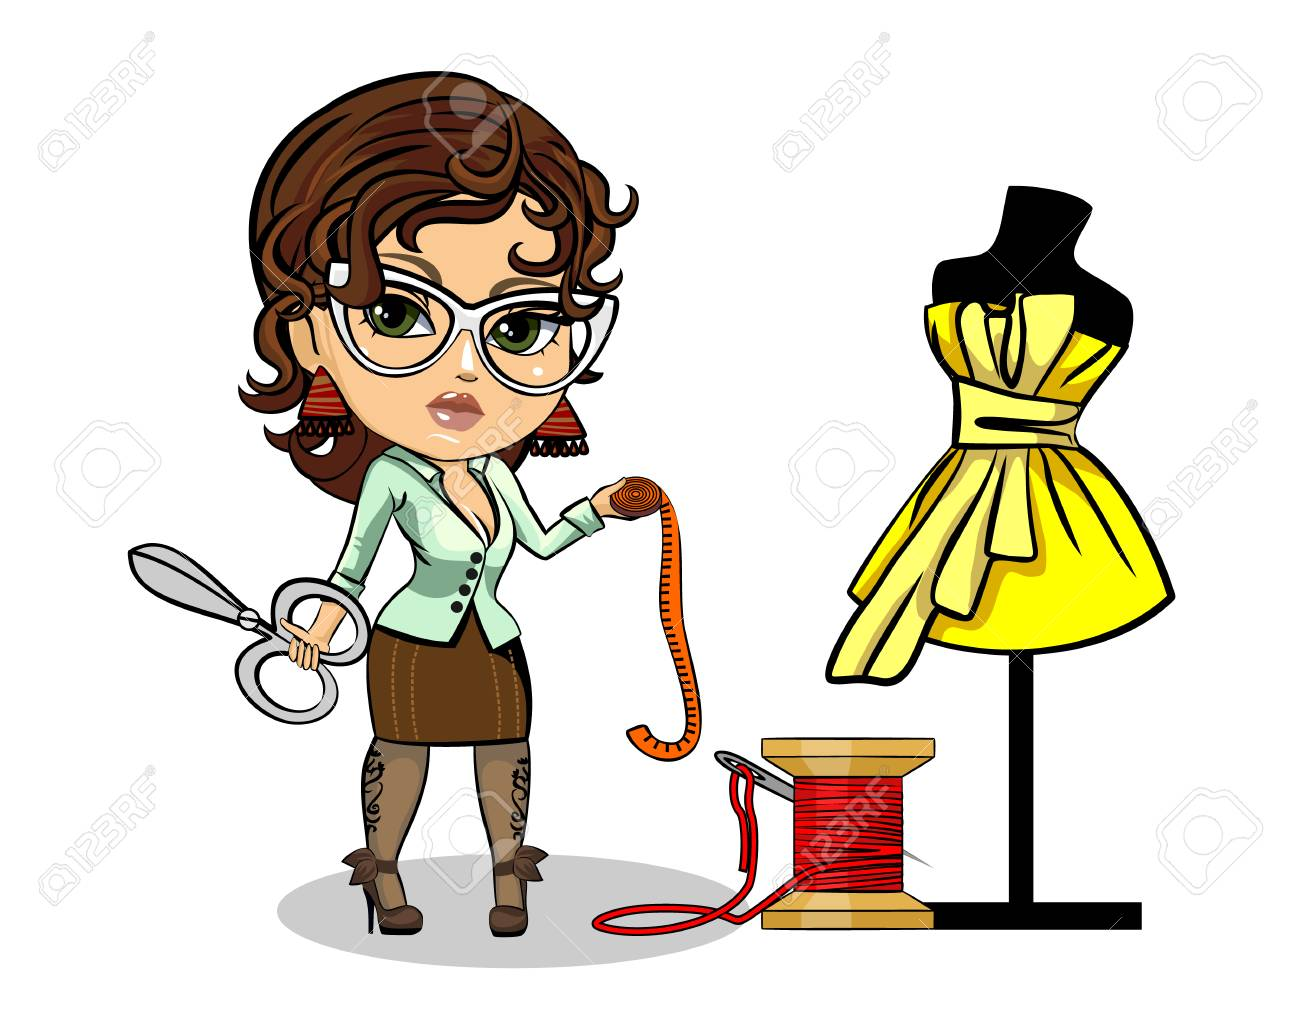 Vector illustration of a tailor designer clothes - 87041492